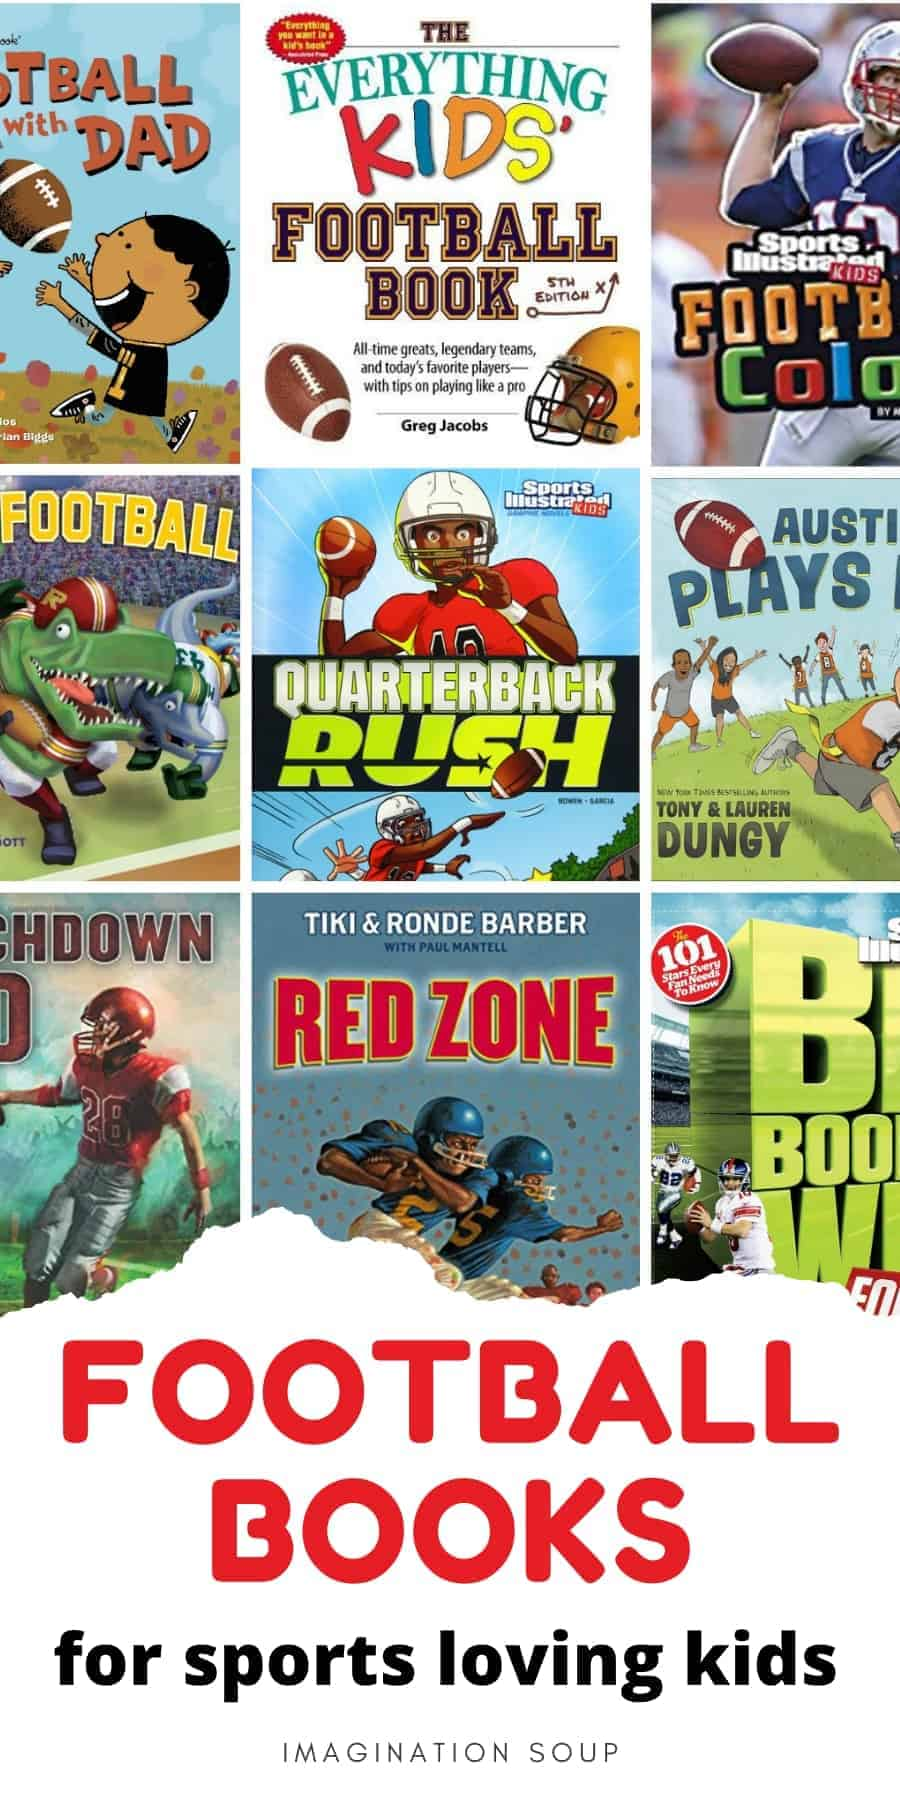 football books for sports loving kids